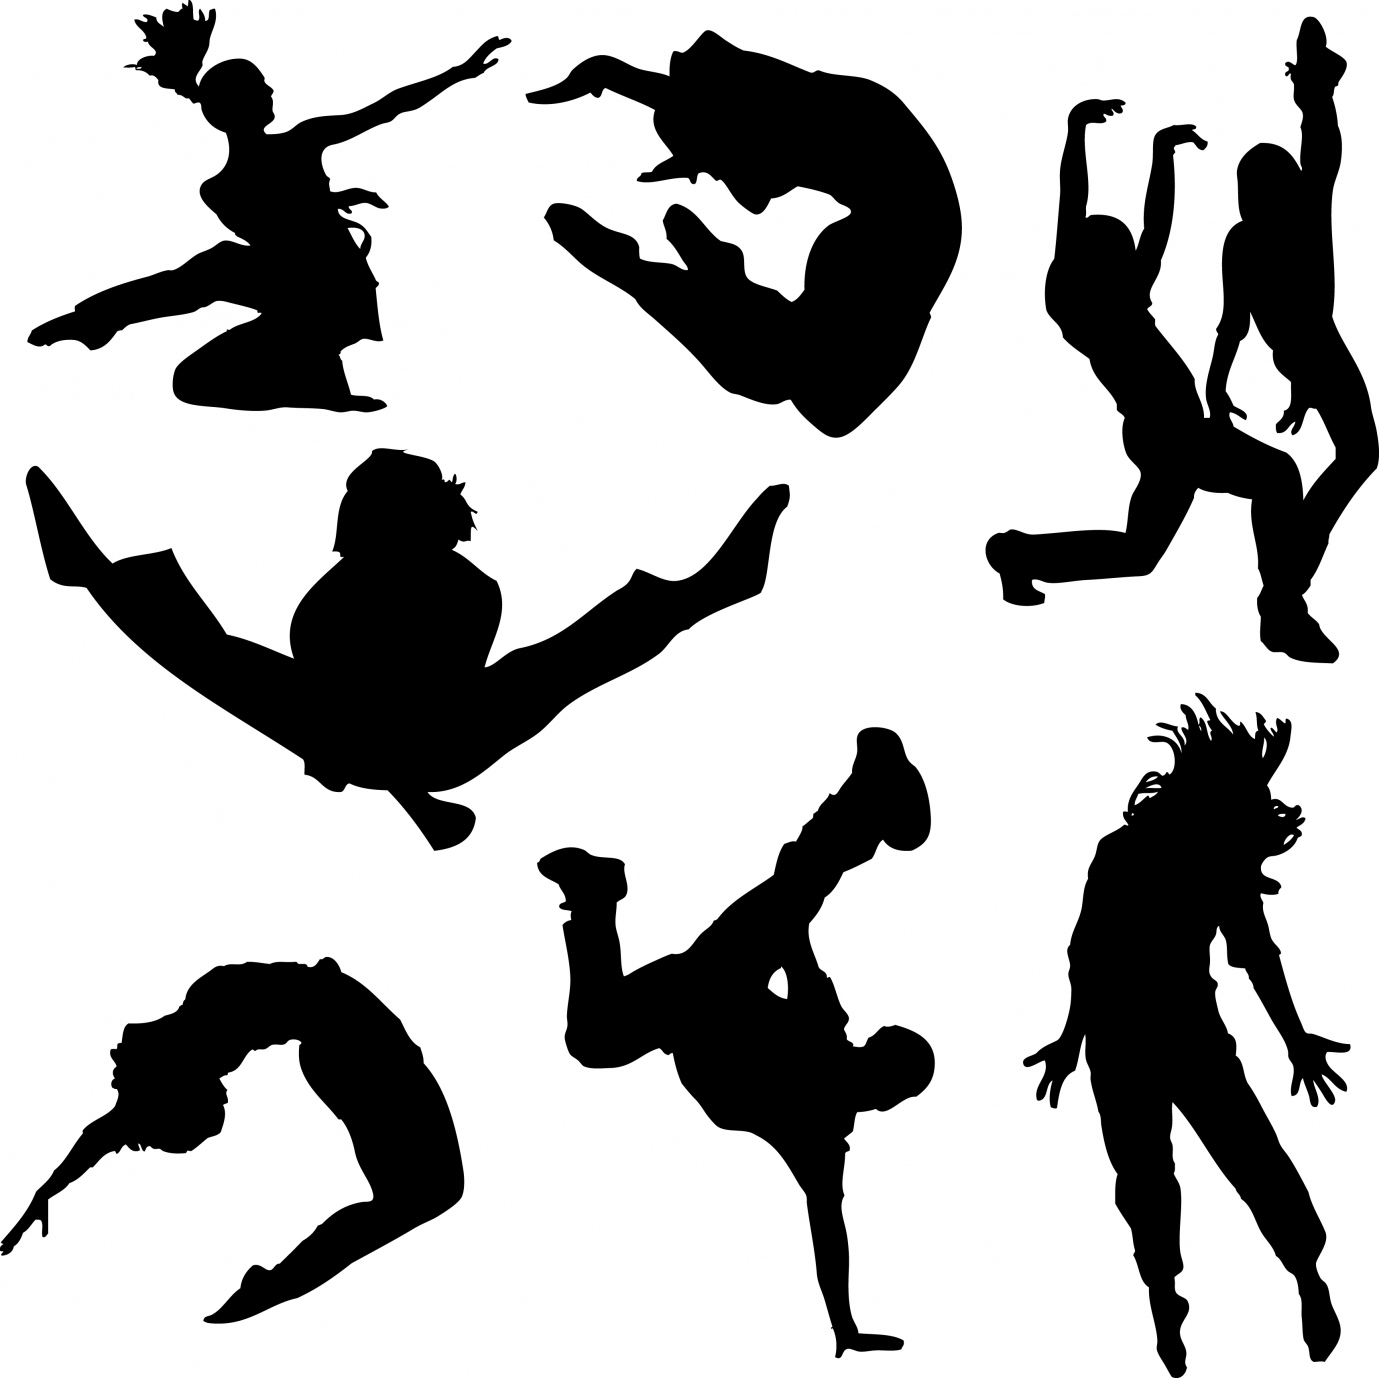 Check Out the Dance Community Page